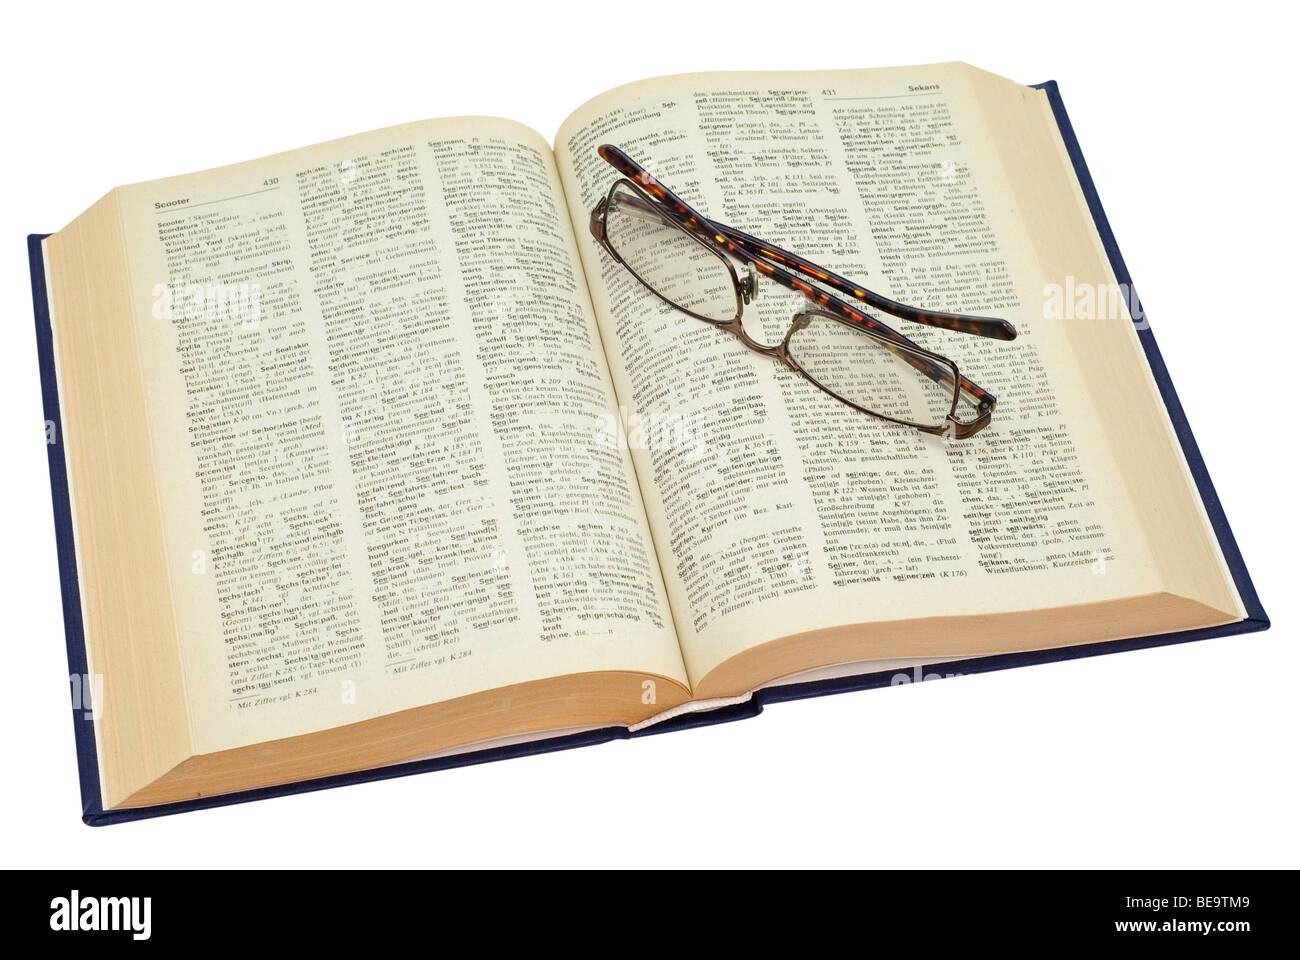 open yellowed old book with glasses, saved with clipping path - Stock Image